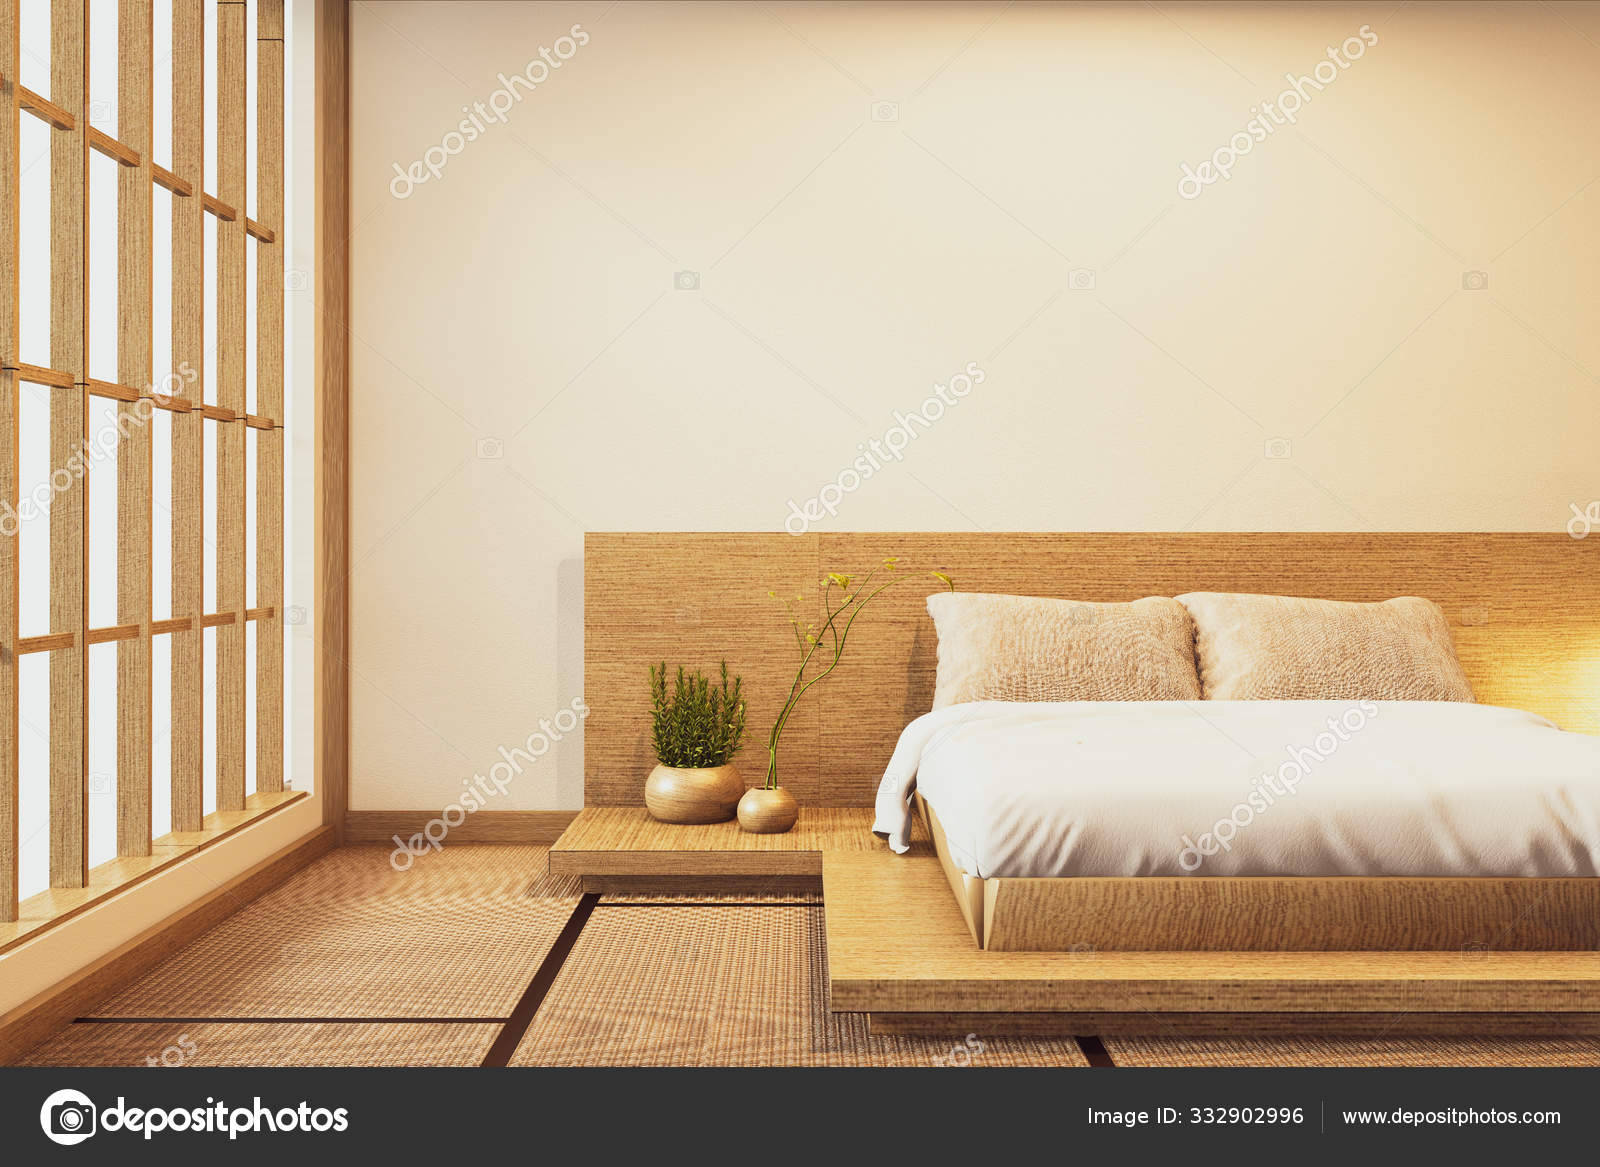 Interior Luxury Modern Japanese Style Bedroom Mock Up Designing Stock Photo C Minny0012011 Gmail Com 332902996